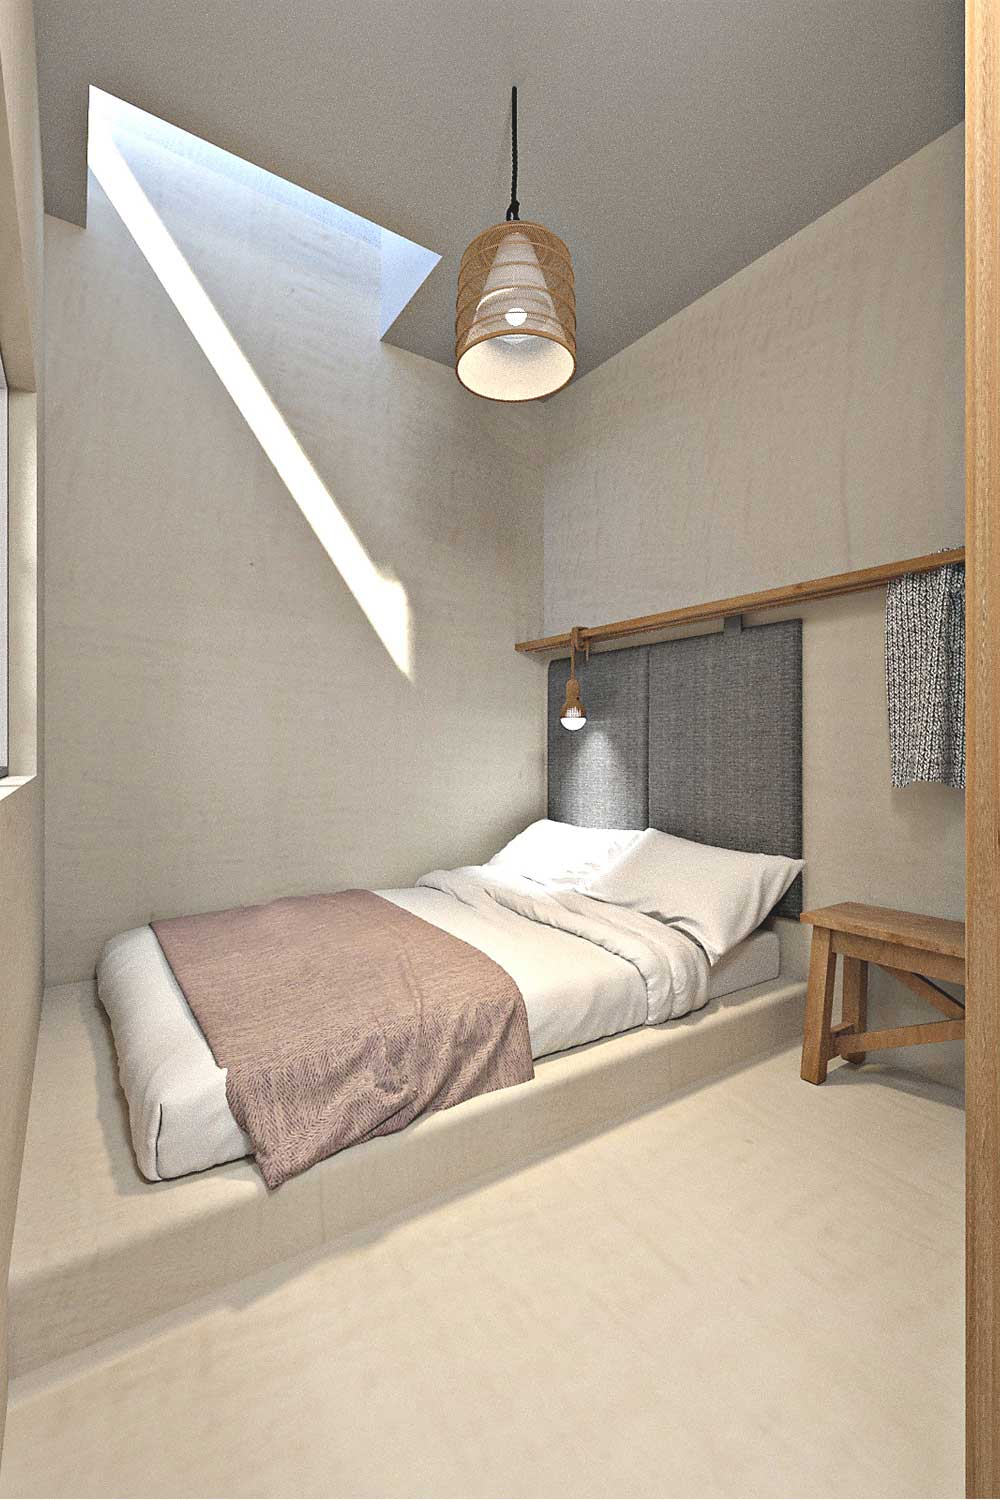 In this cute bedroom the light comes from an internal window and a dormer one.